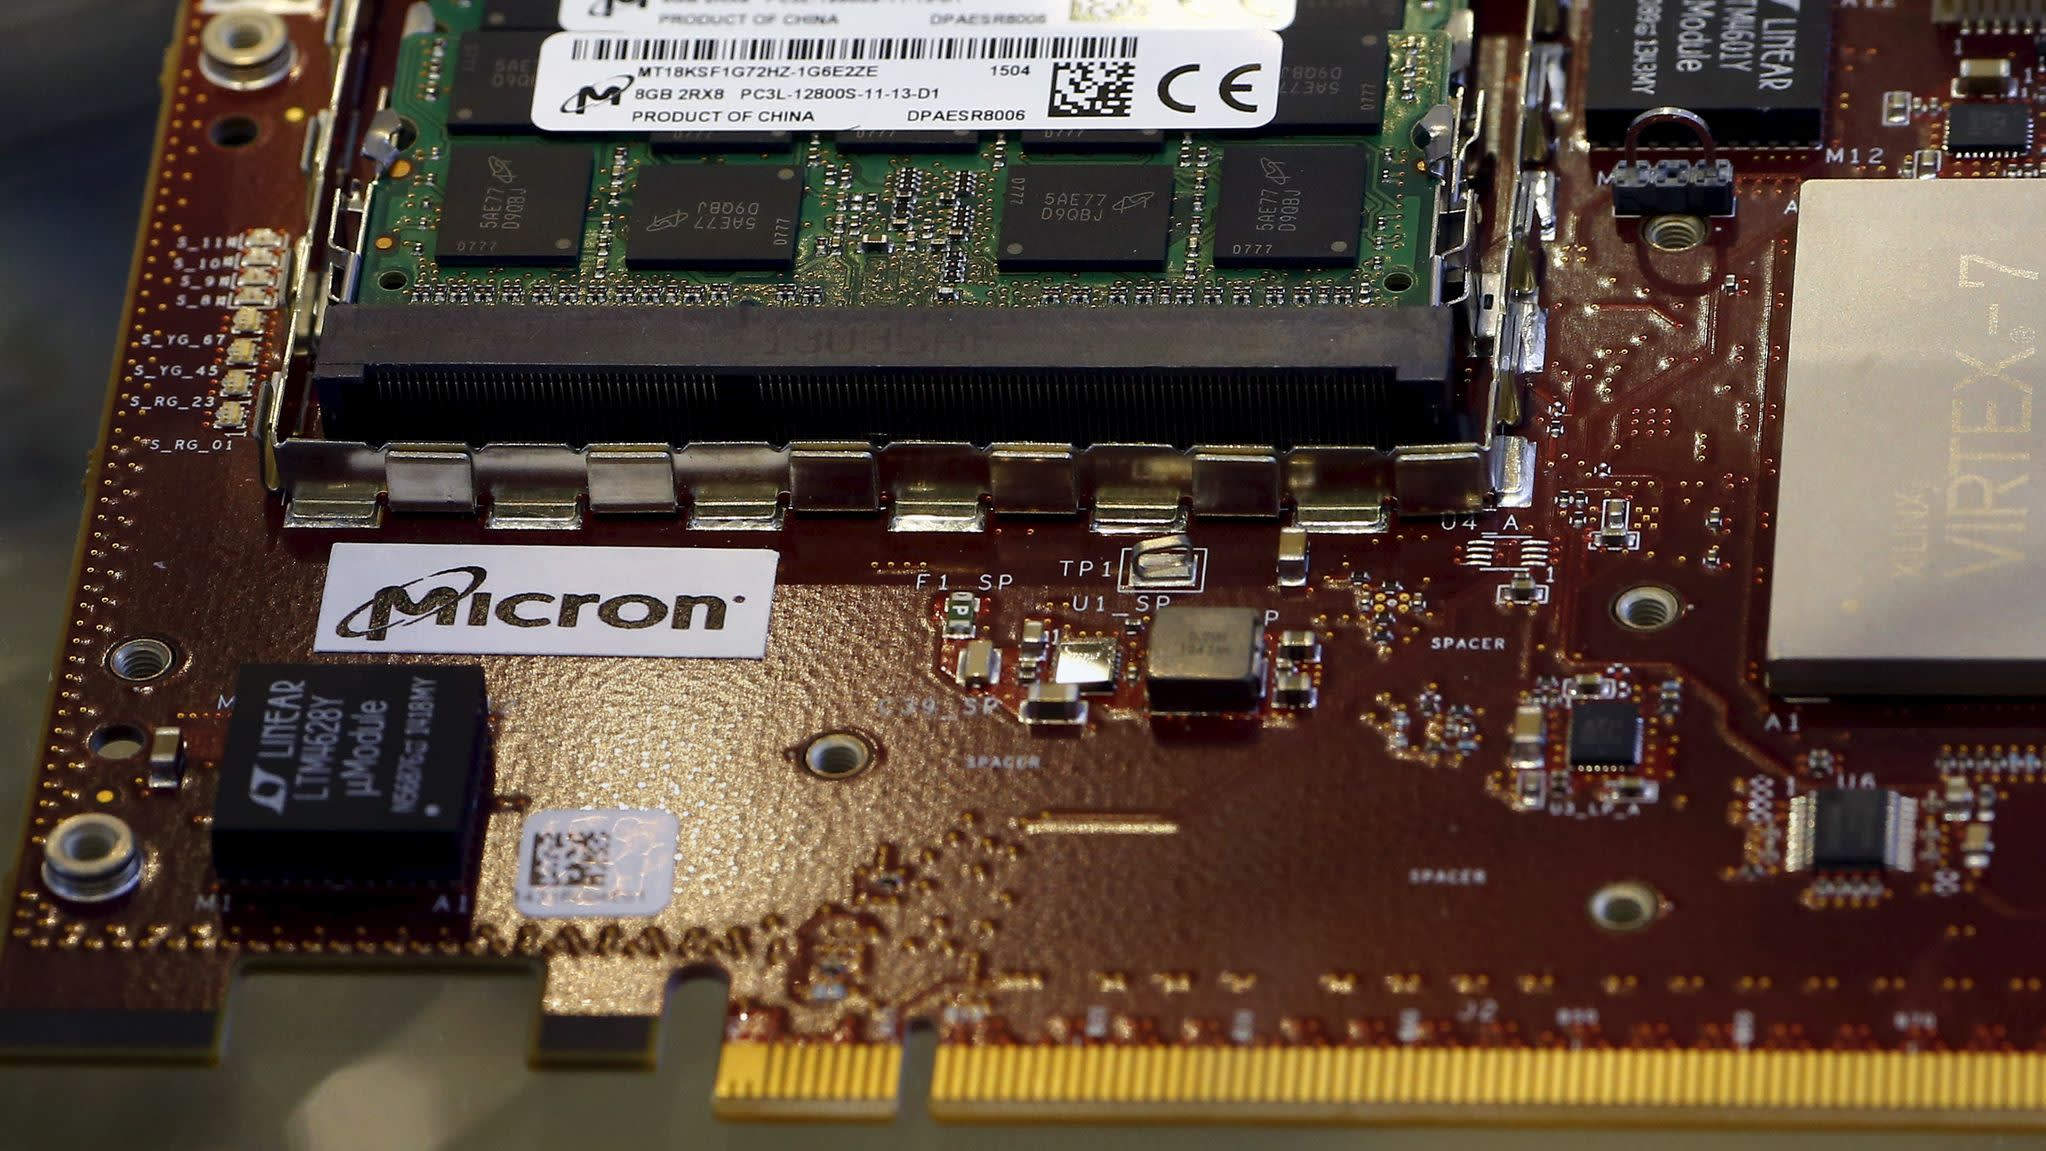 Chinese Chipmakers Brace For Next Us Crackdown Nikkei Asian Review Packagedintegratedcircuit1jpg Chipmaker Micron Technology Is Suing Fujian Jinhua Integrated Circuit To Which The Trump Administration Just Barred Exports On Charges Of Stealing